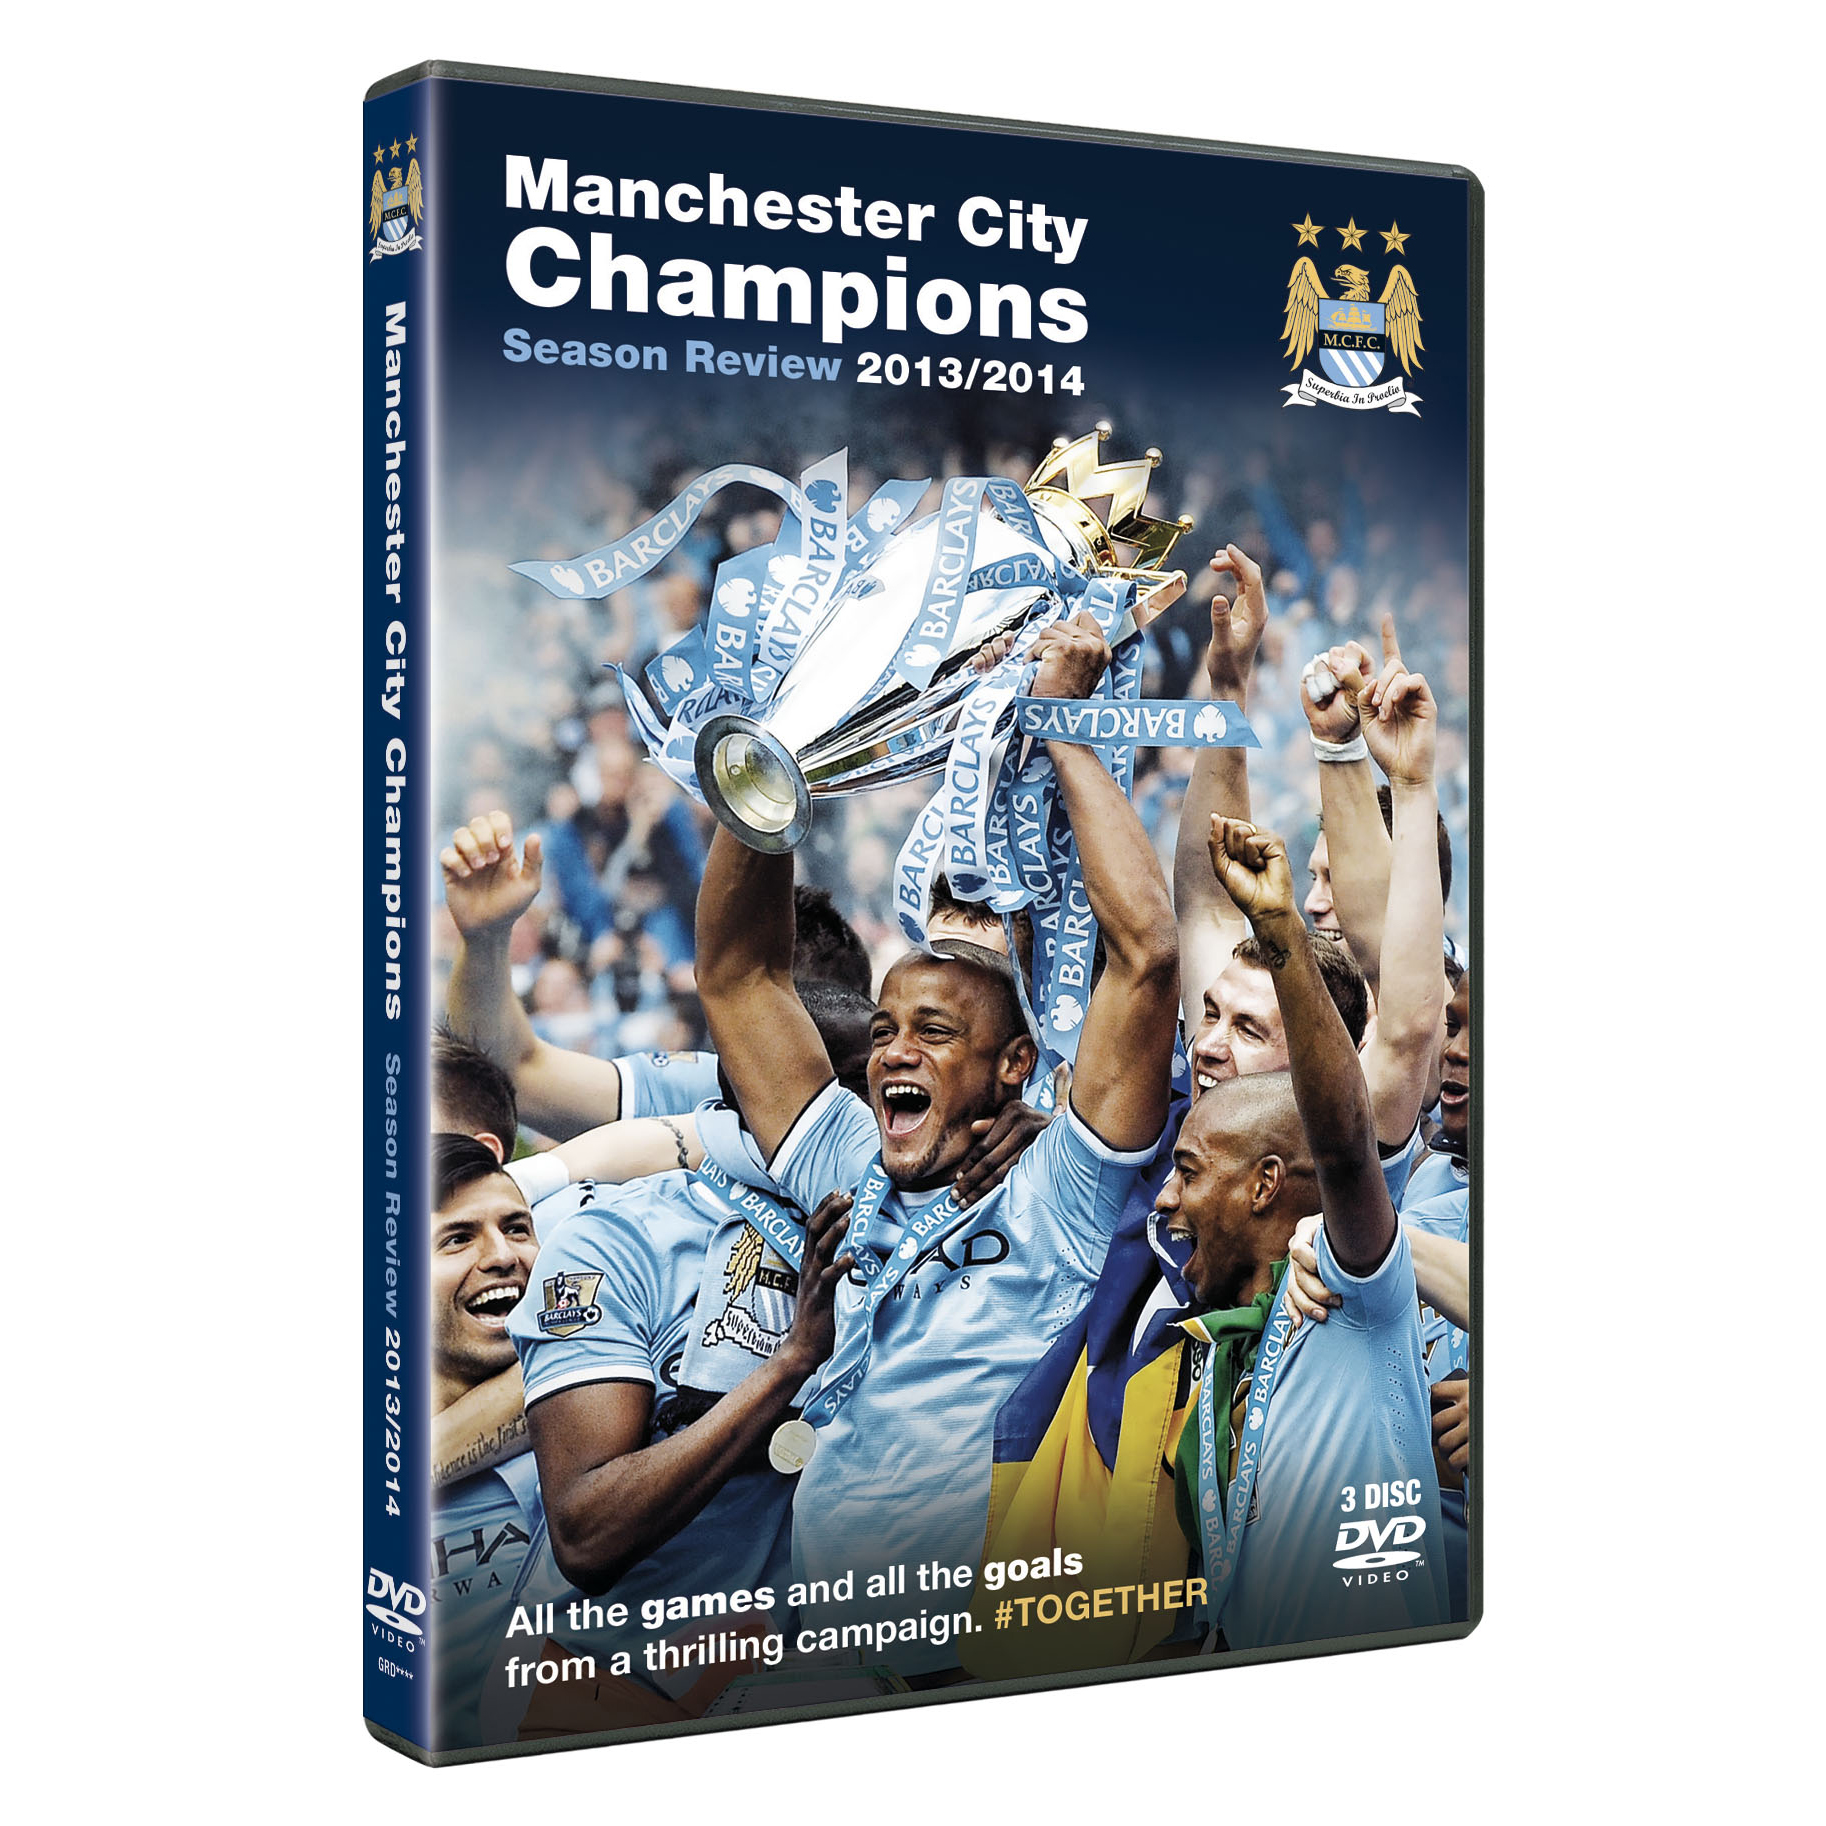 Manchester City Champions #Together DVD